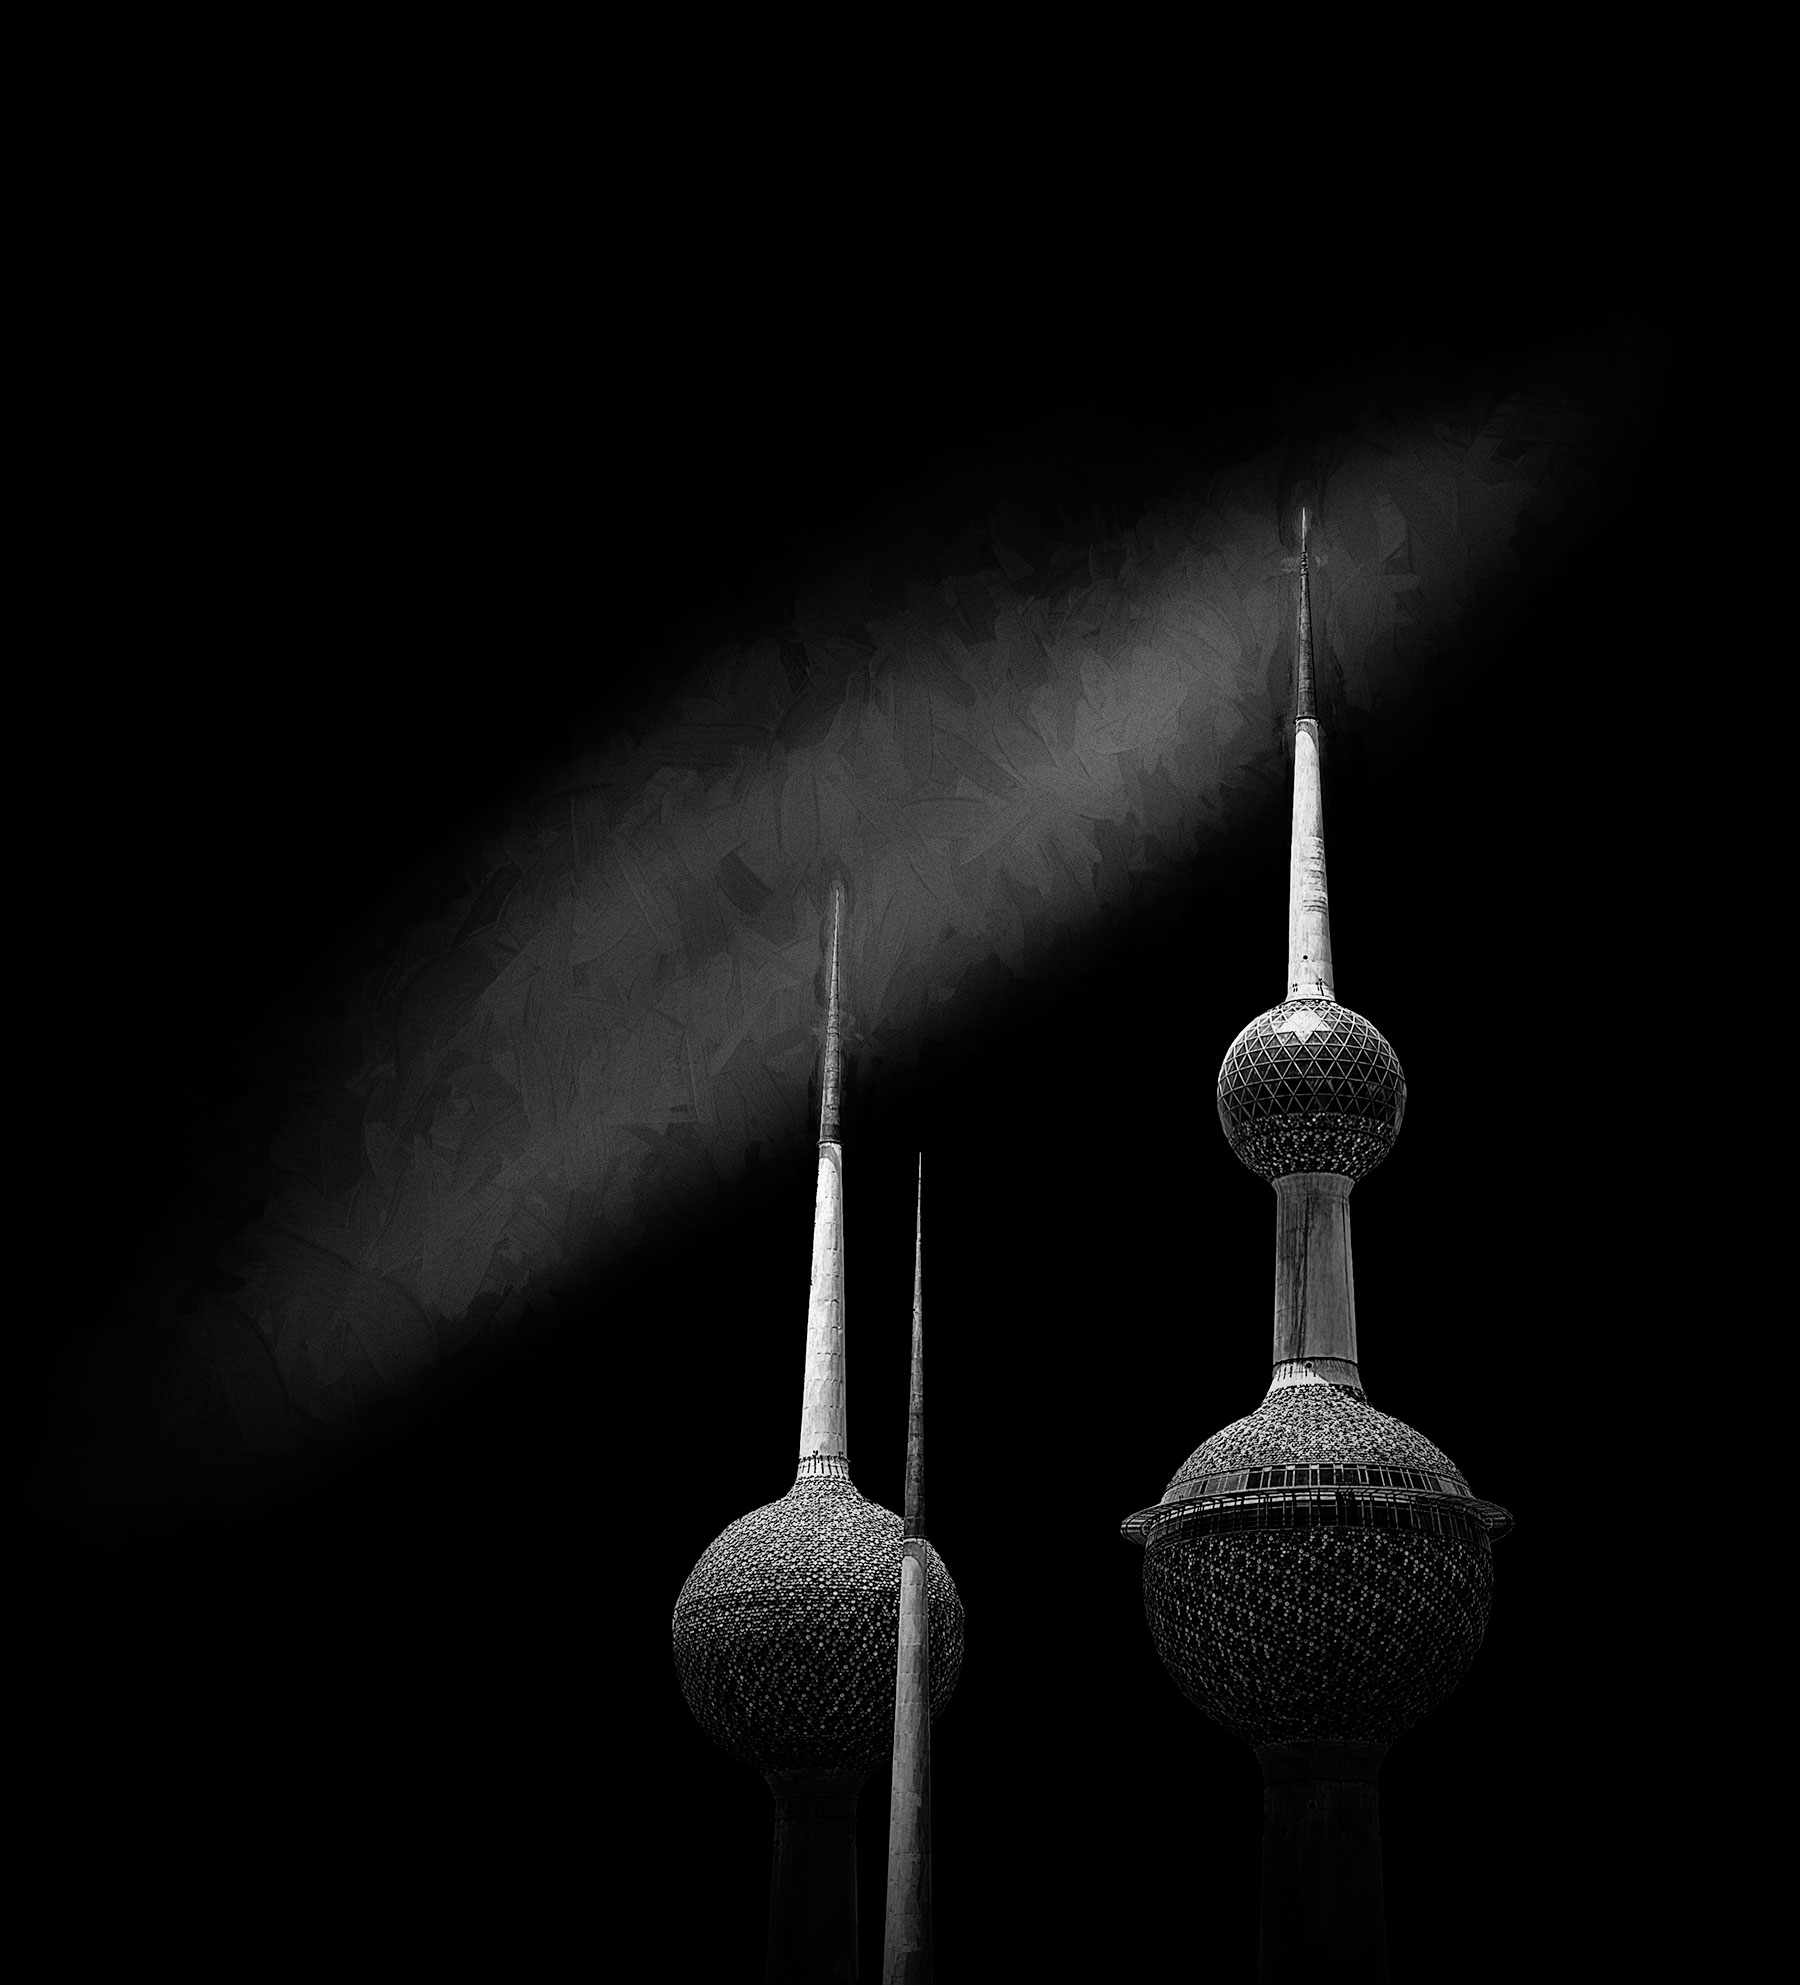 Middle East Towers